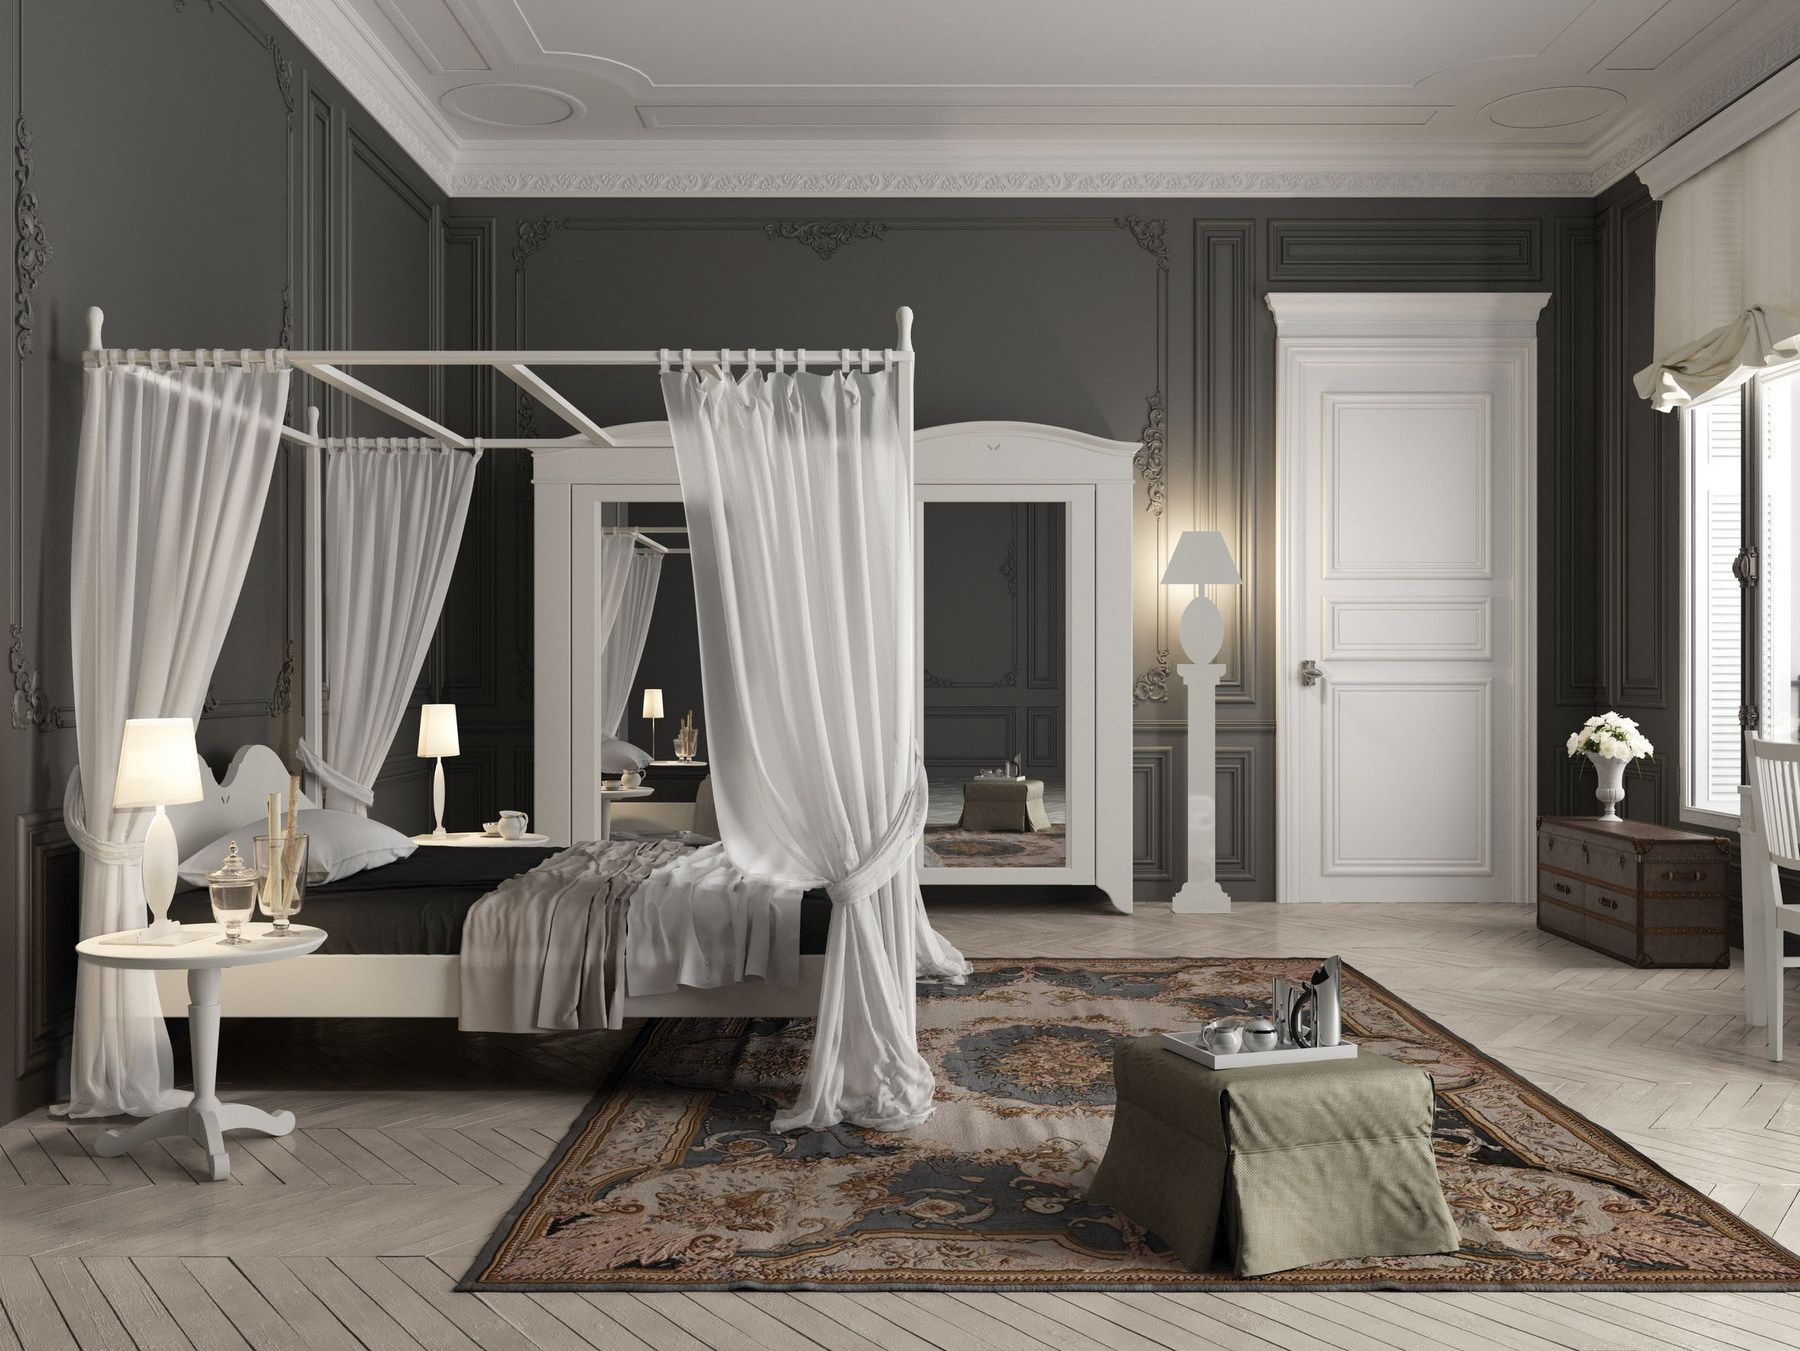 ANSOUIS Full size bed by Minacciolo